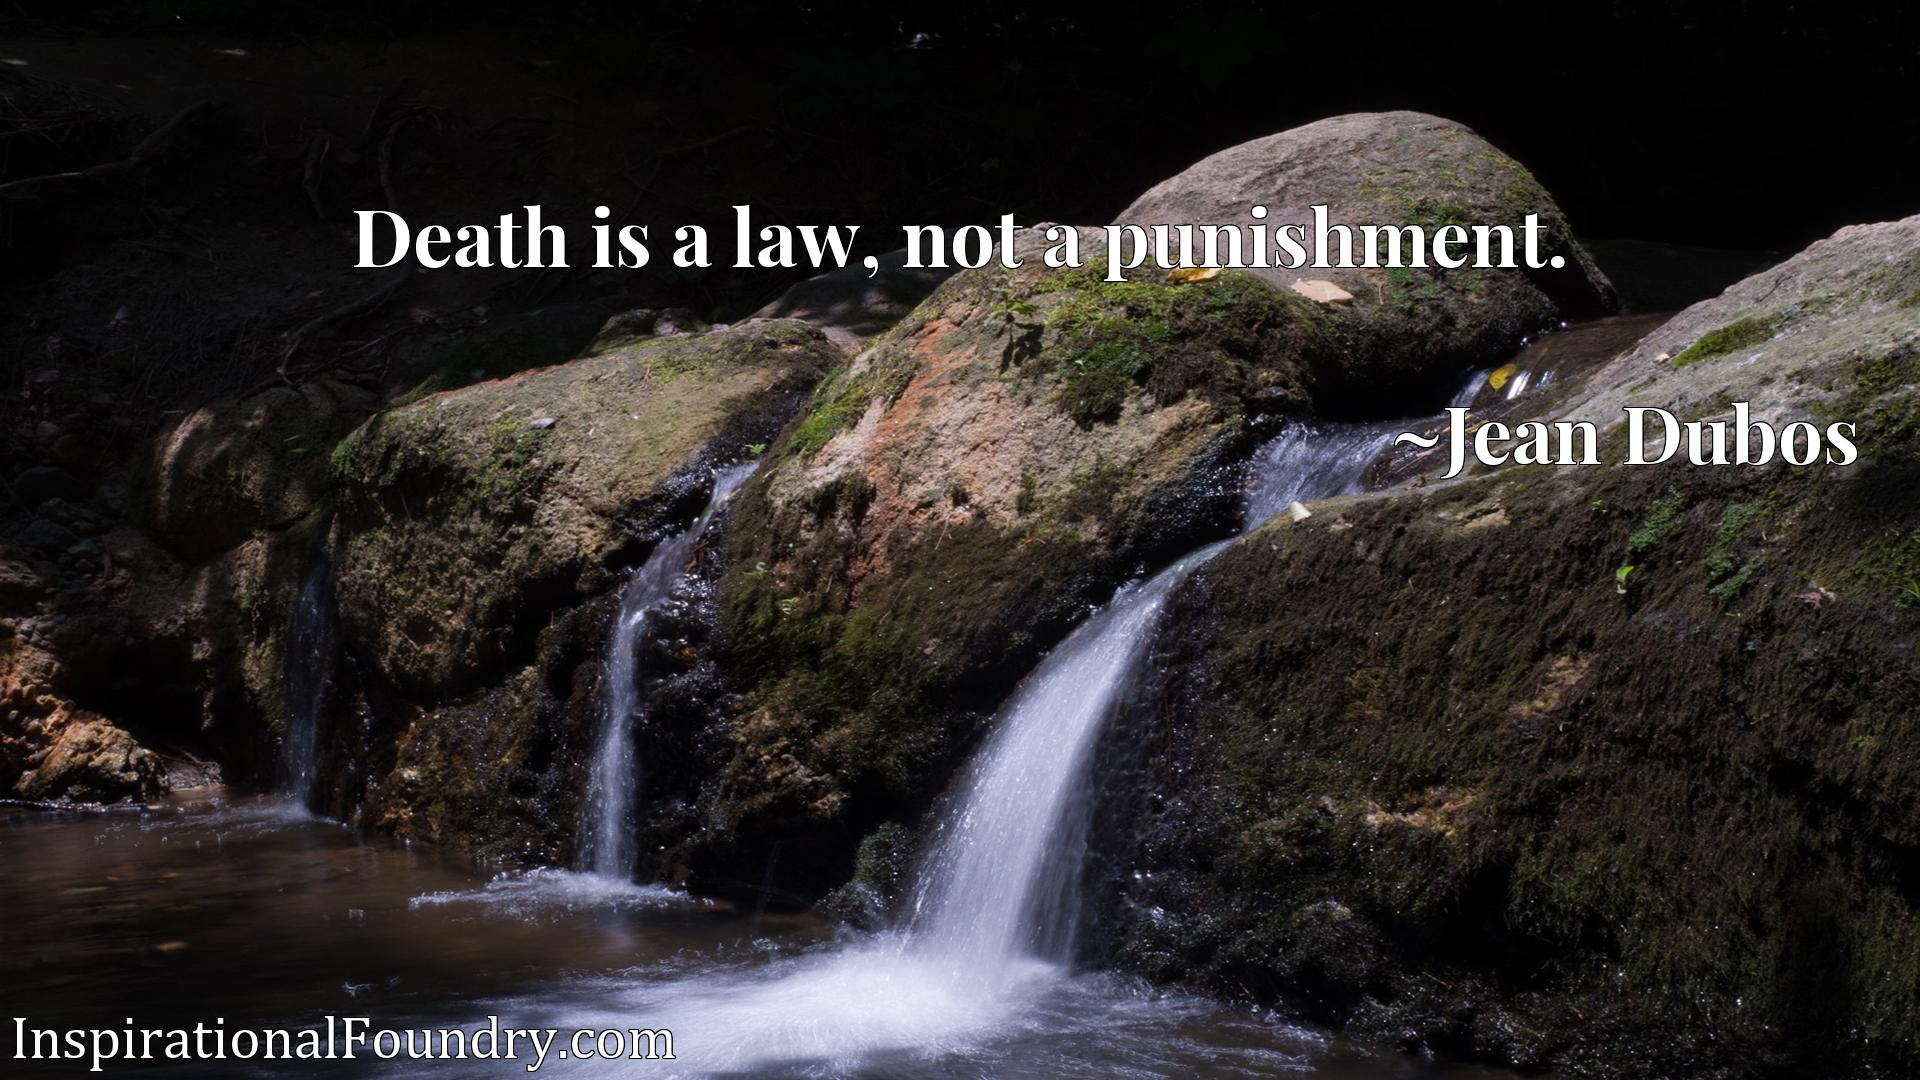 Death is a law, not a punishment.